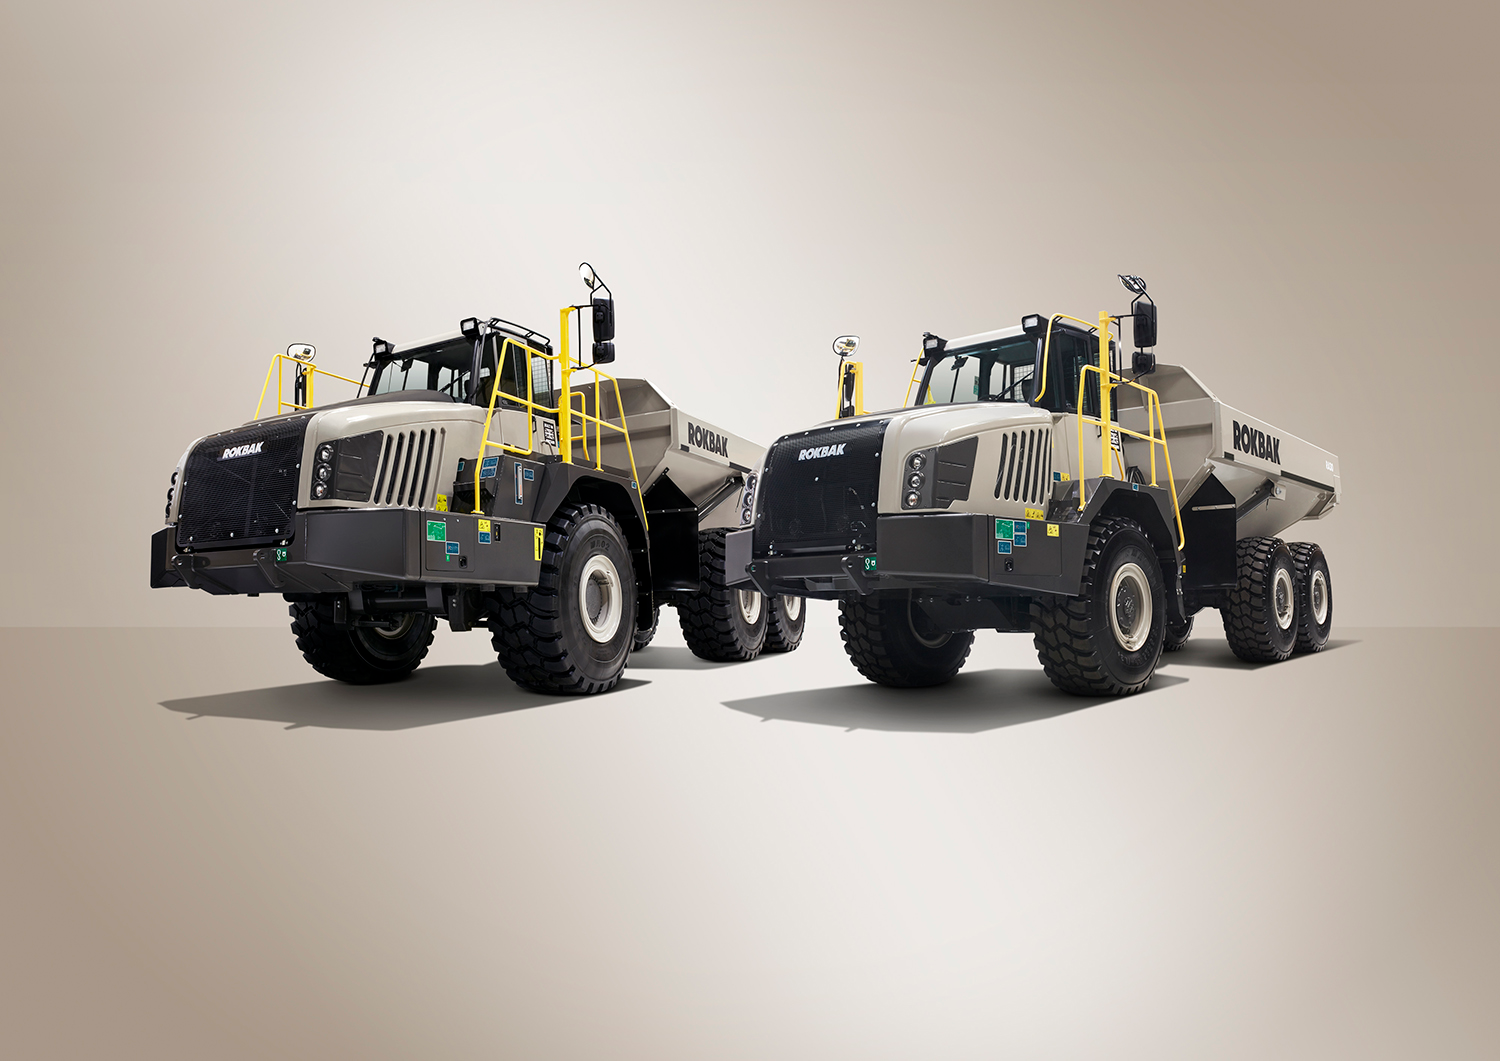 Volvo traces the Rokbak lineage back to 1934 when Euclid Road Machinery built what Volvo calls the world's first off-road truck, the Model 1Z. The trucks have been made in Motherwell, Scotland since 1950.